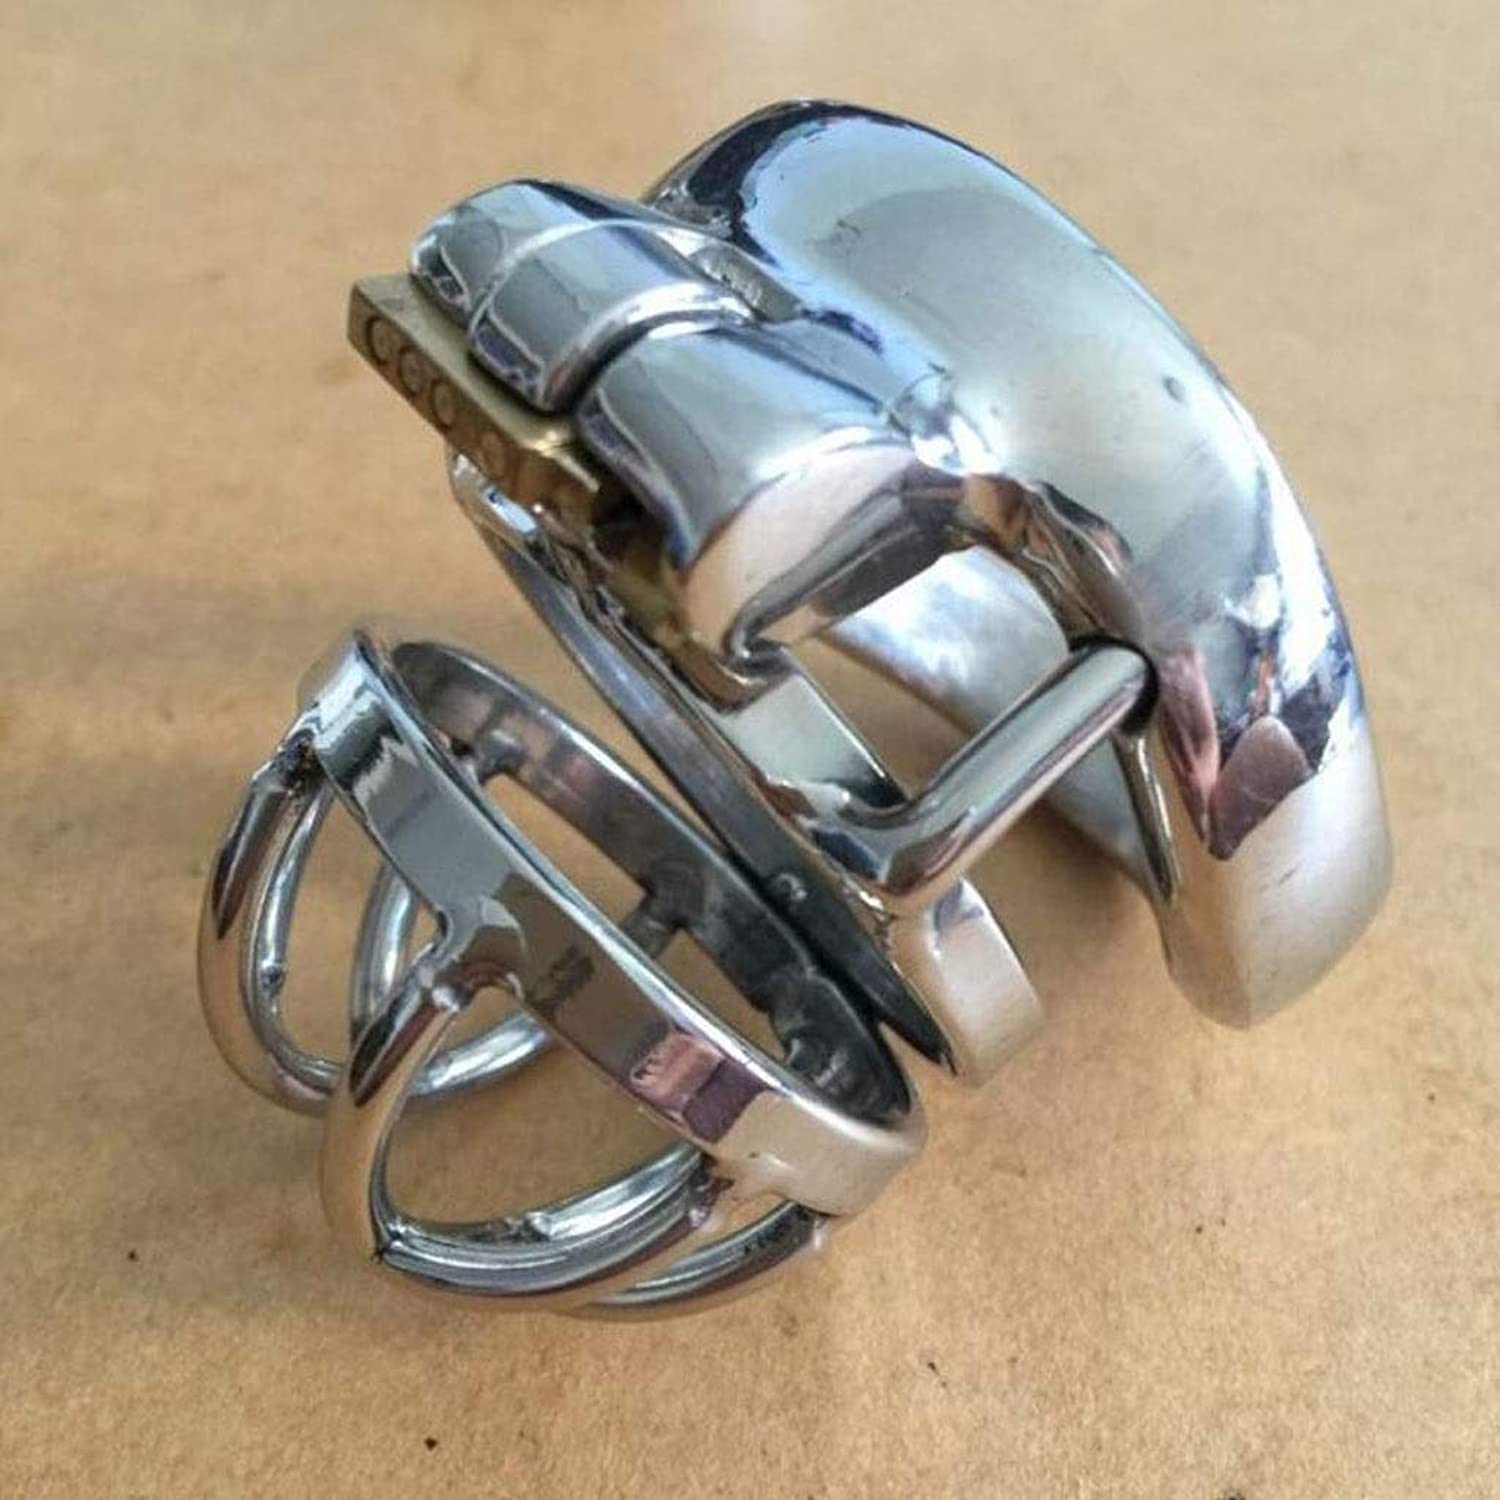 CJH Men's Portable Stainless Steel Chastity Lock Curved Snap Ring Alternative Sex Toys